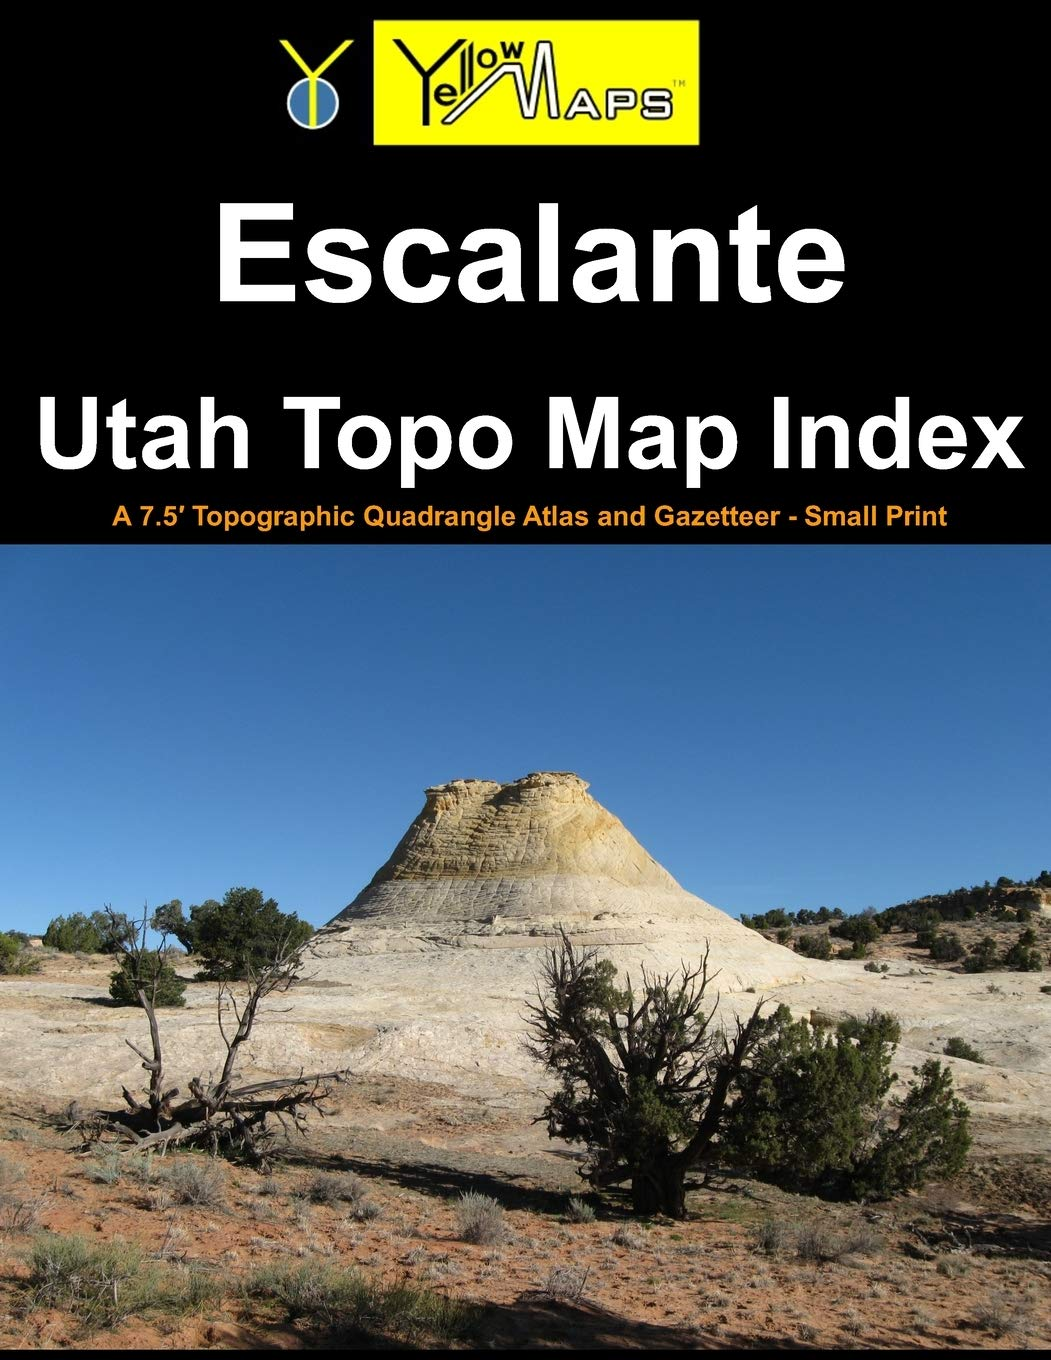 Paperback atlas: Escalante Utah Topo Map Index